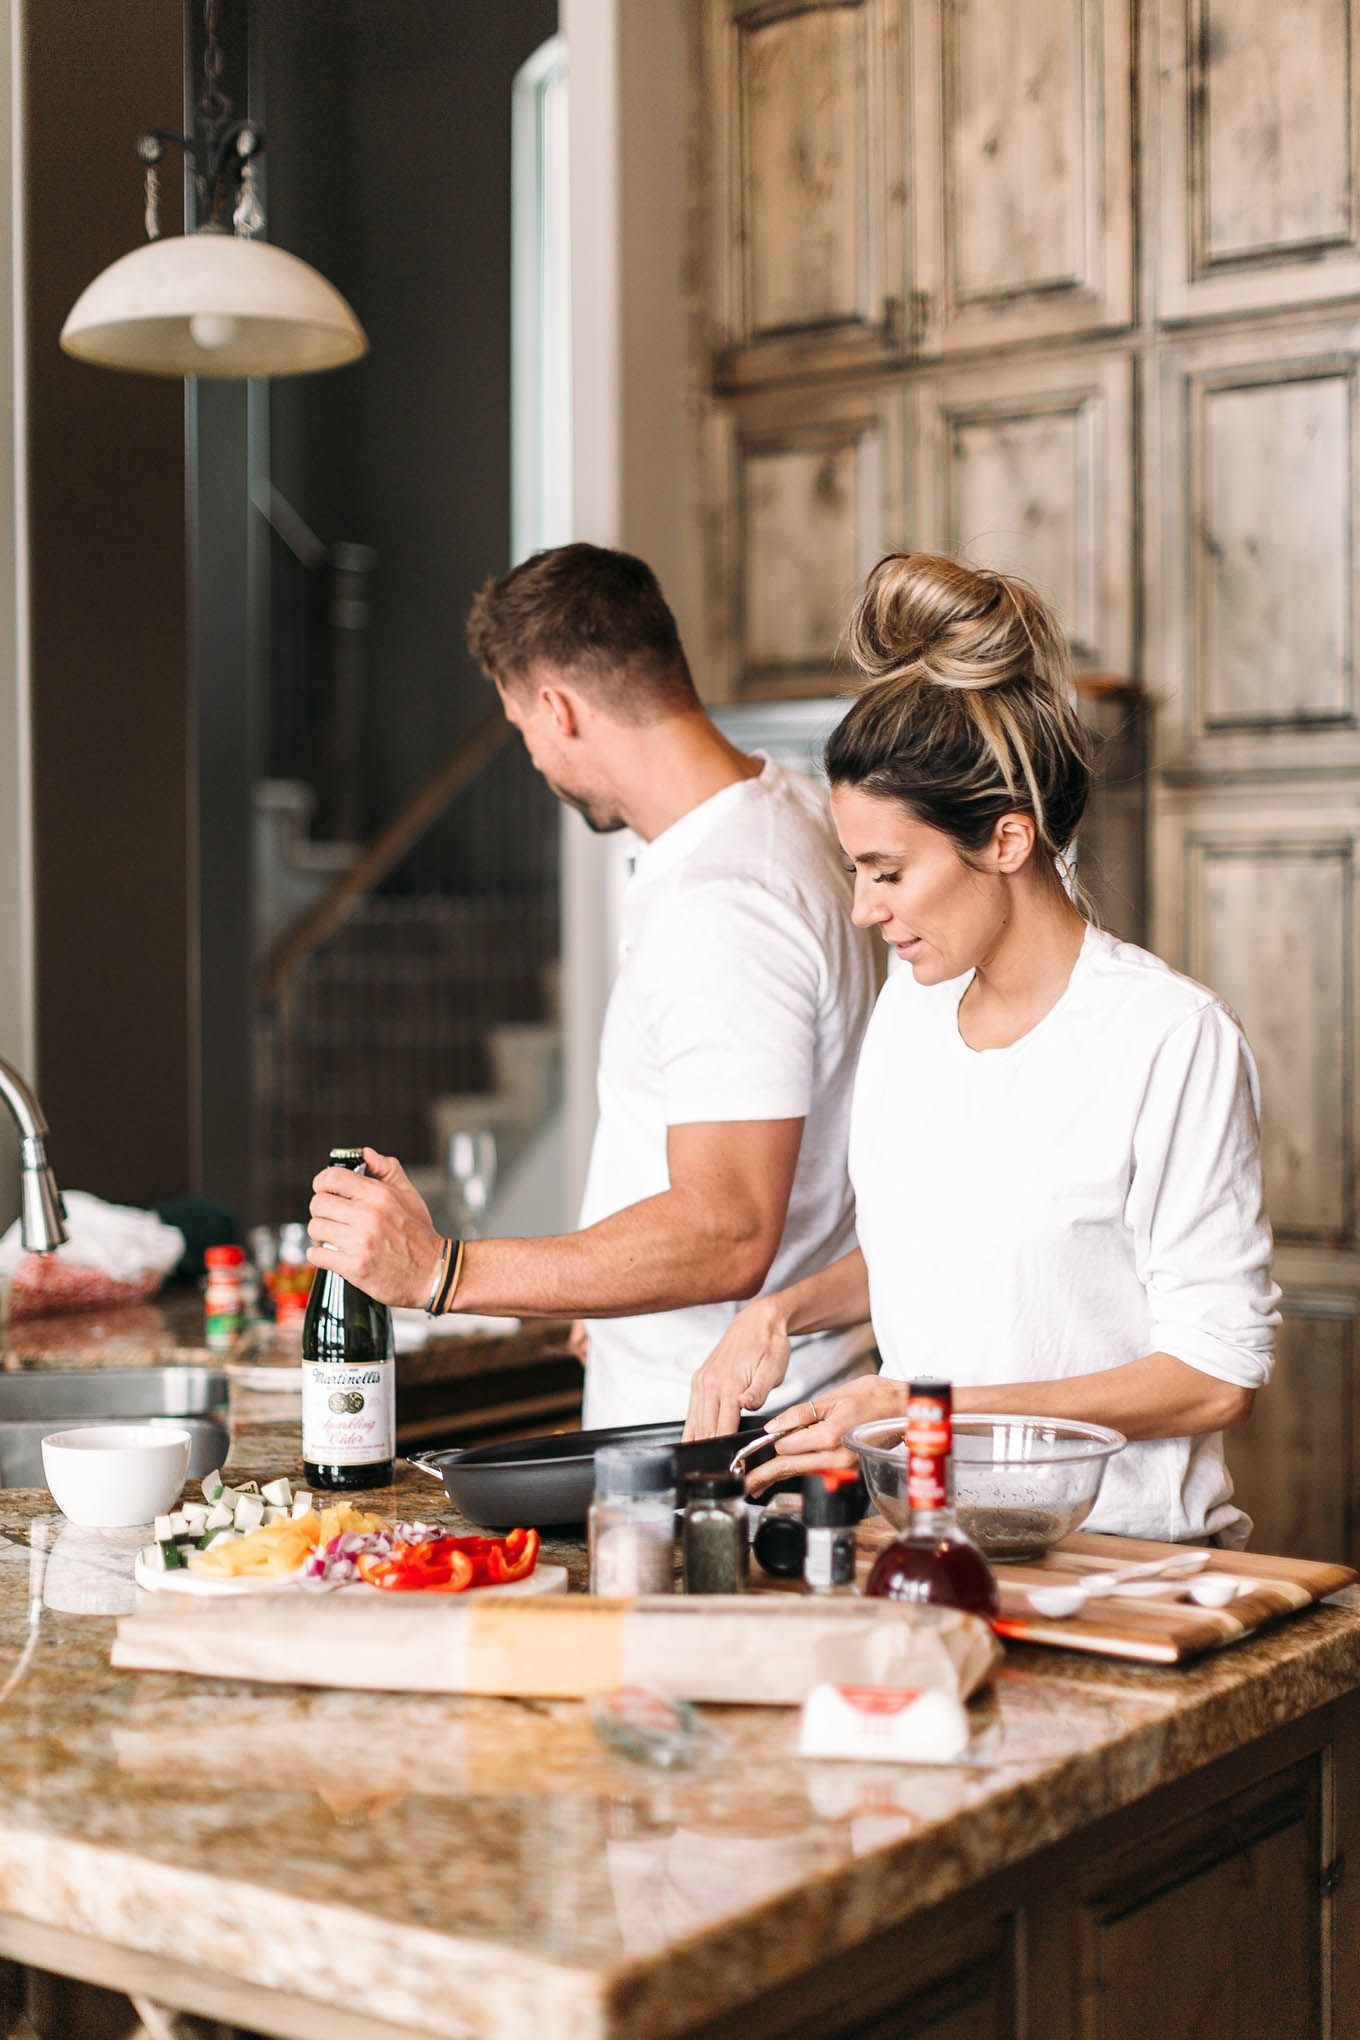 Dating and cooking show